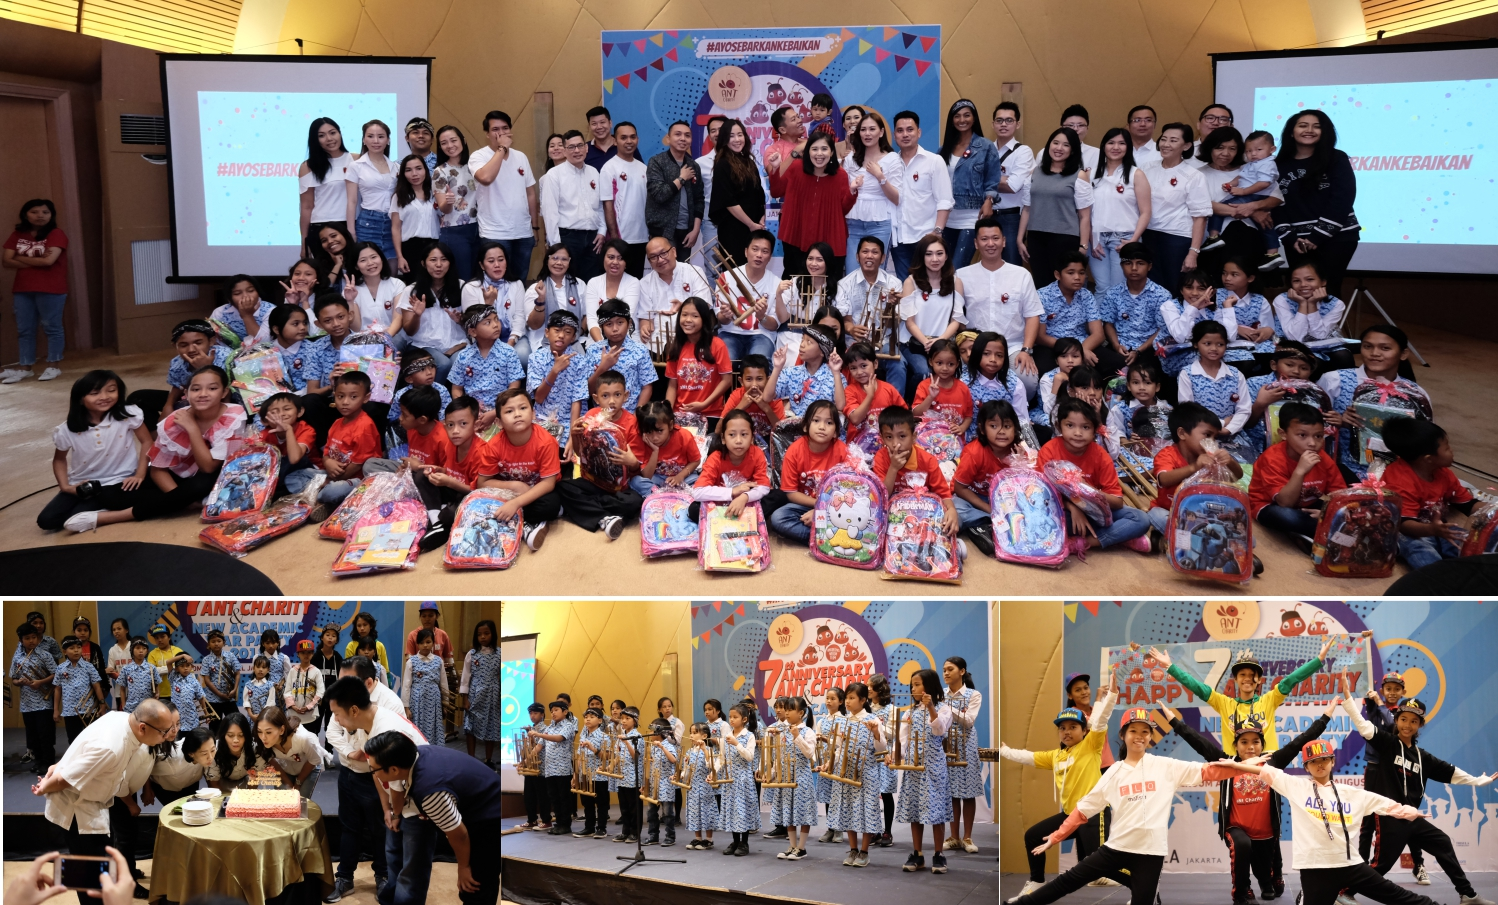 7 TH ANNIVERSARY ANT CHARITY AND NEW ACADEMIC YEAR PARTY